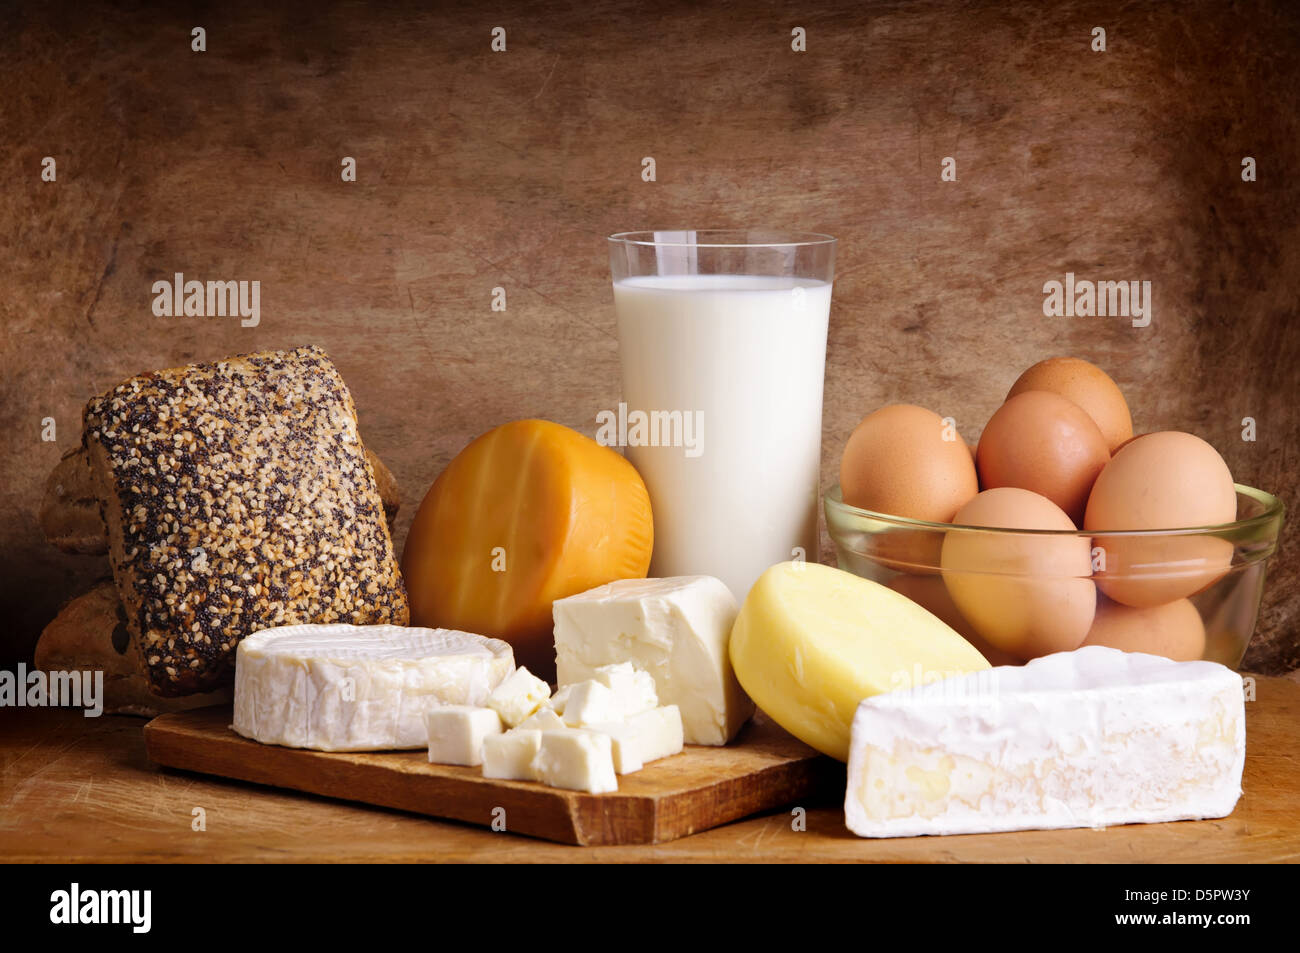 still life with dairy products, milk, eggs, bread and chees on a vintage wooden background - Stock Image